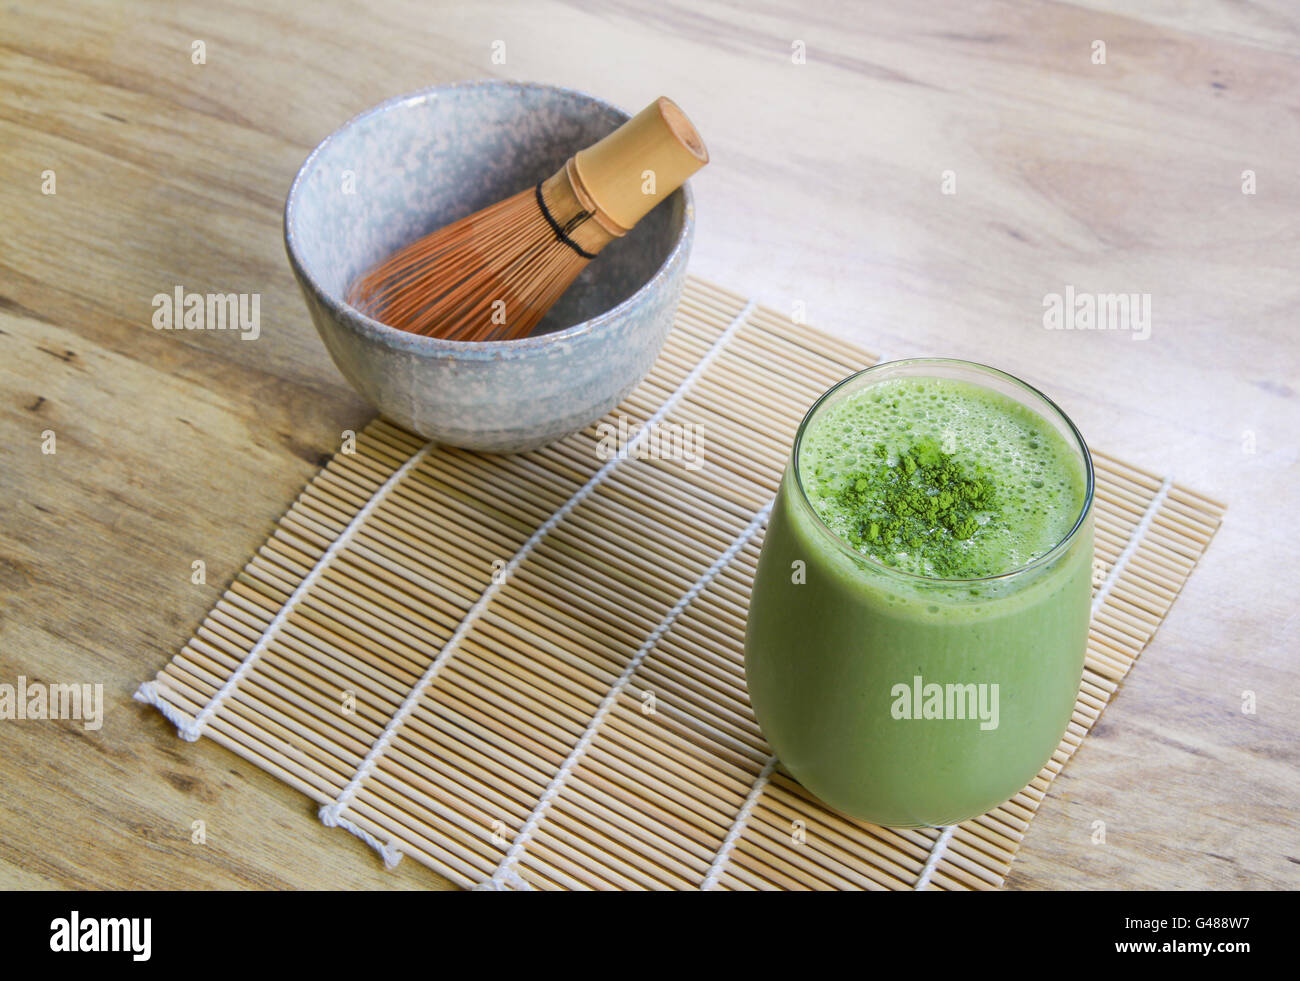 Matcha Green Tea Smoothie with Stone Bowl and wooden whisk on bamboo mat on table above angle view landscape orientation - Stock Image